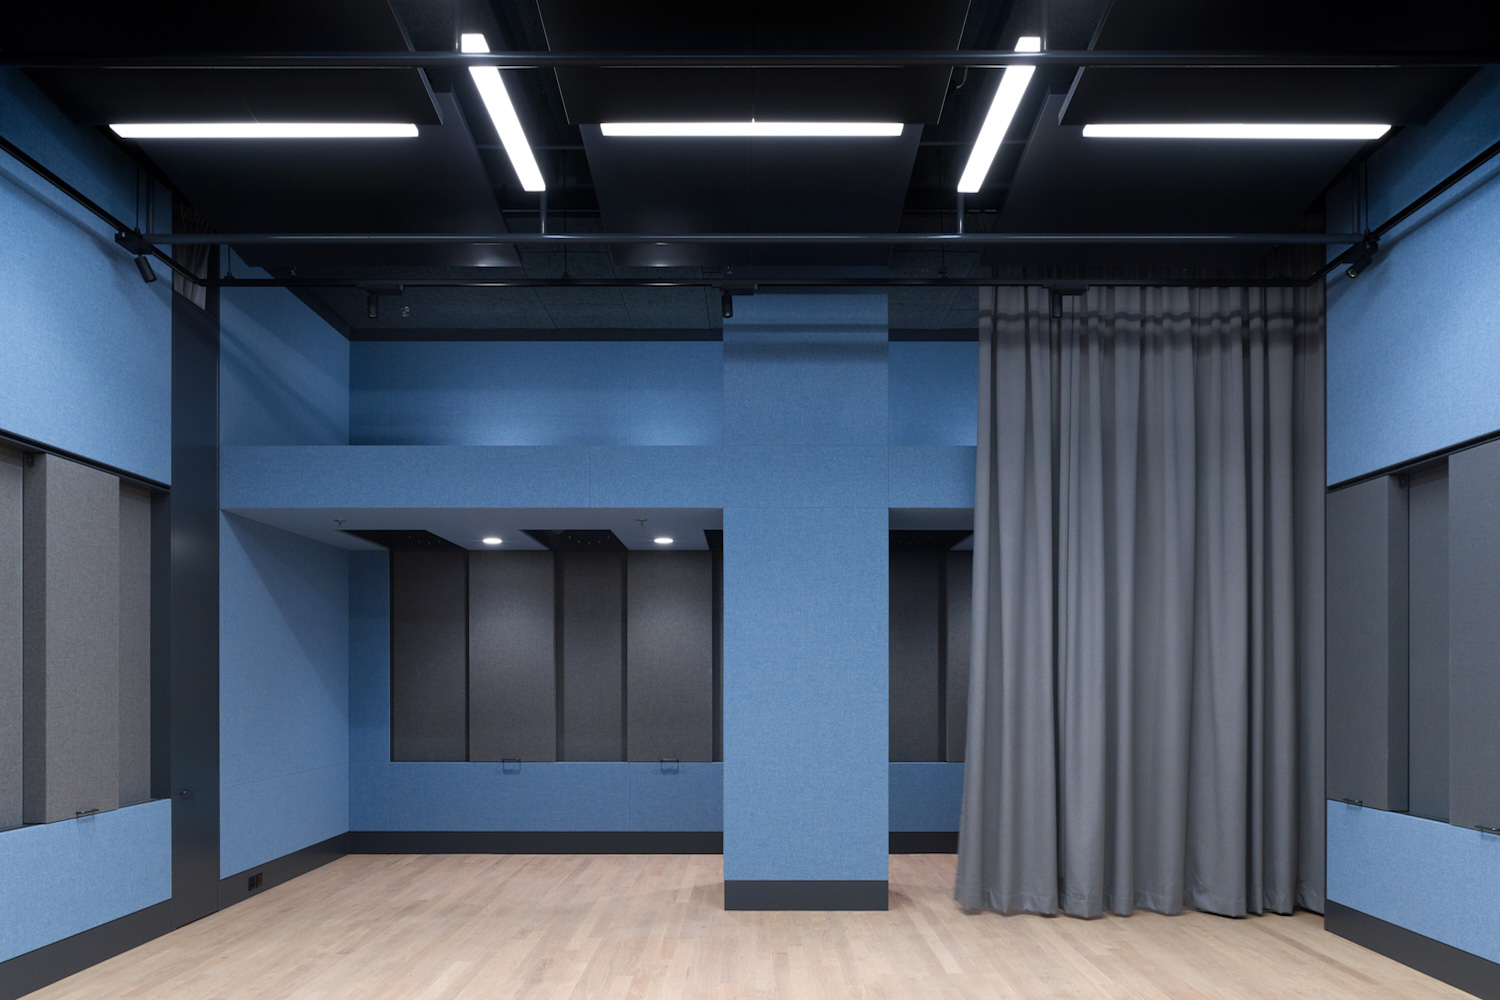 Schweizer Radio und Fernsehen broadcasting company relocated their Basel facilities and WSDG's services were retained to tune the acoustics of these rooms and ensure high-quality working areas for SRF. Studio drama room.